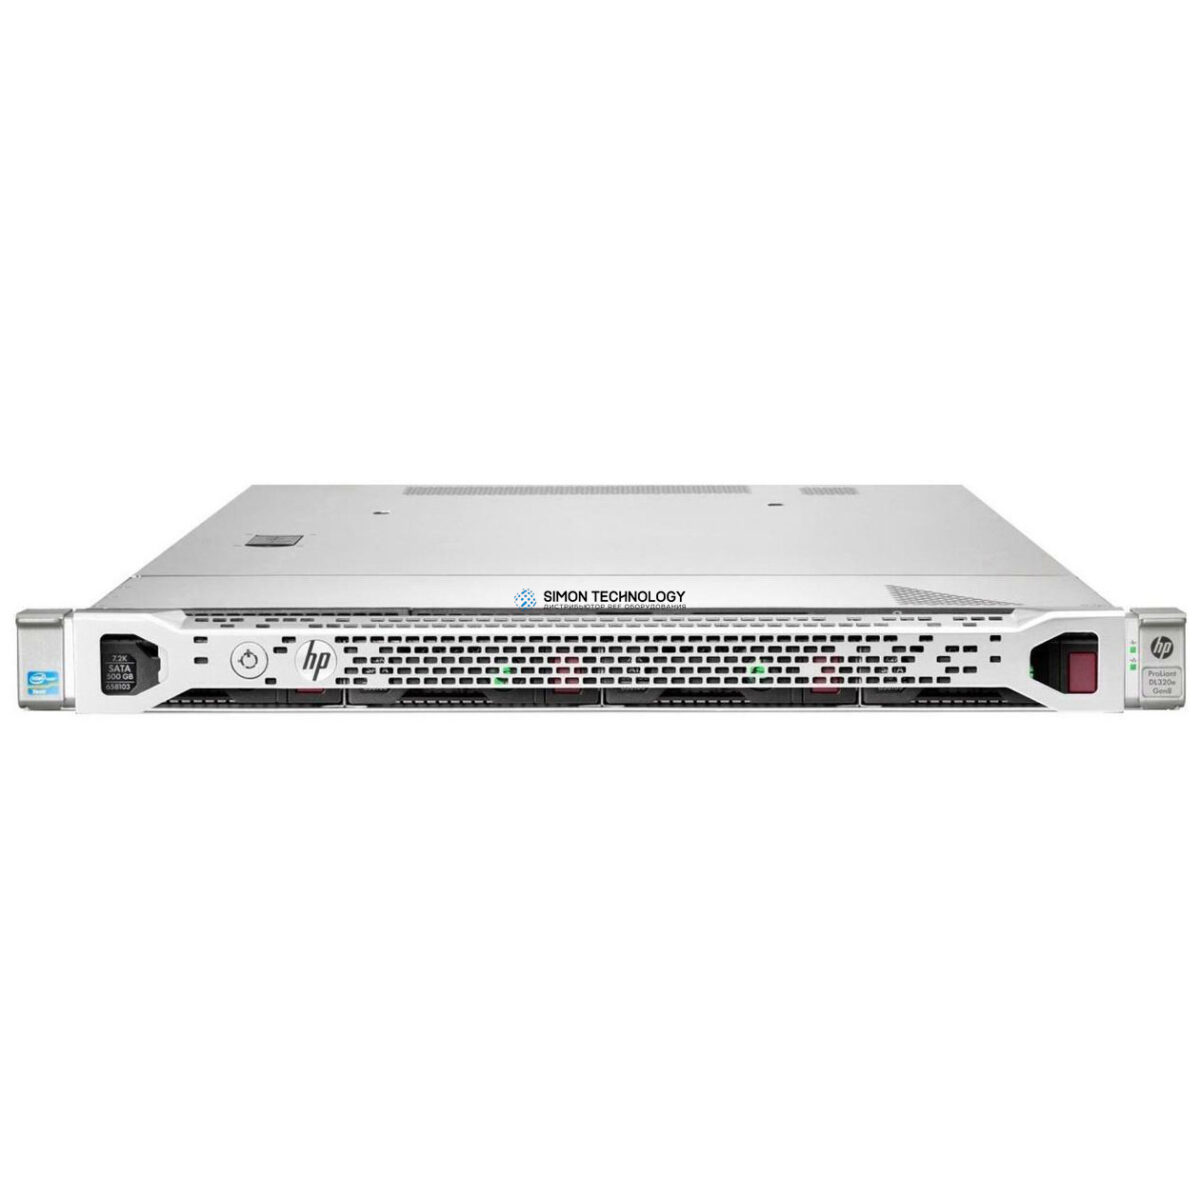 Сервер HP DL320 Gen 8 Configure To Order Server (DL320G8)